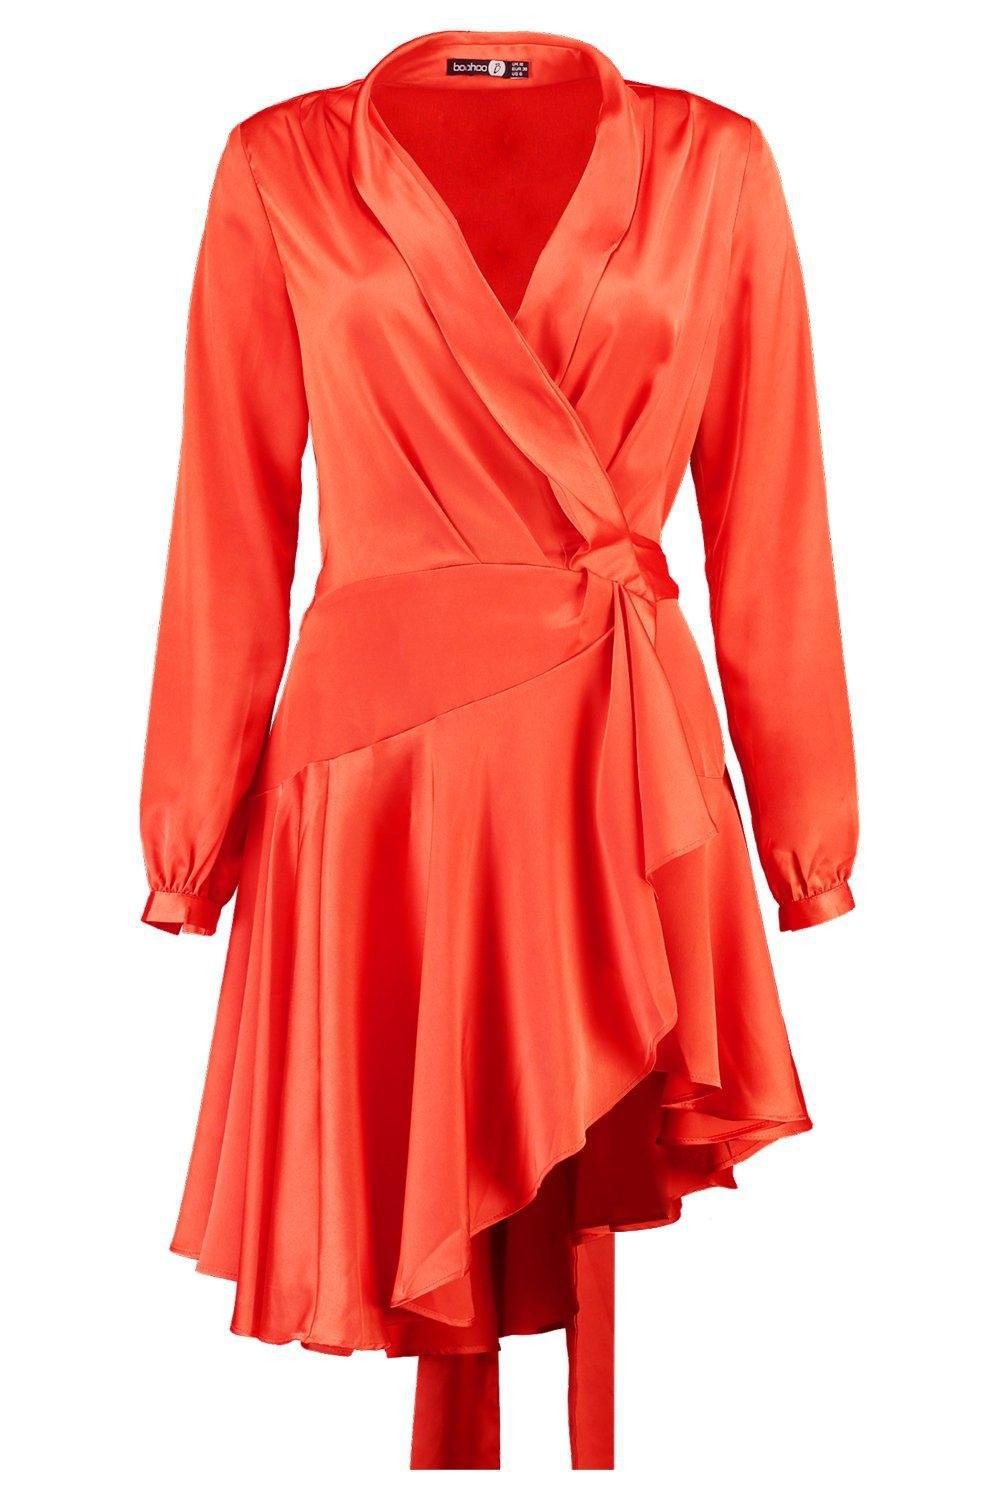 Boohoo Boutique Alice Satin Wrap Skater Dress in Orange - Lyst 3ffa2f1be